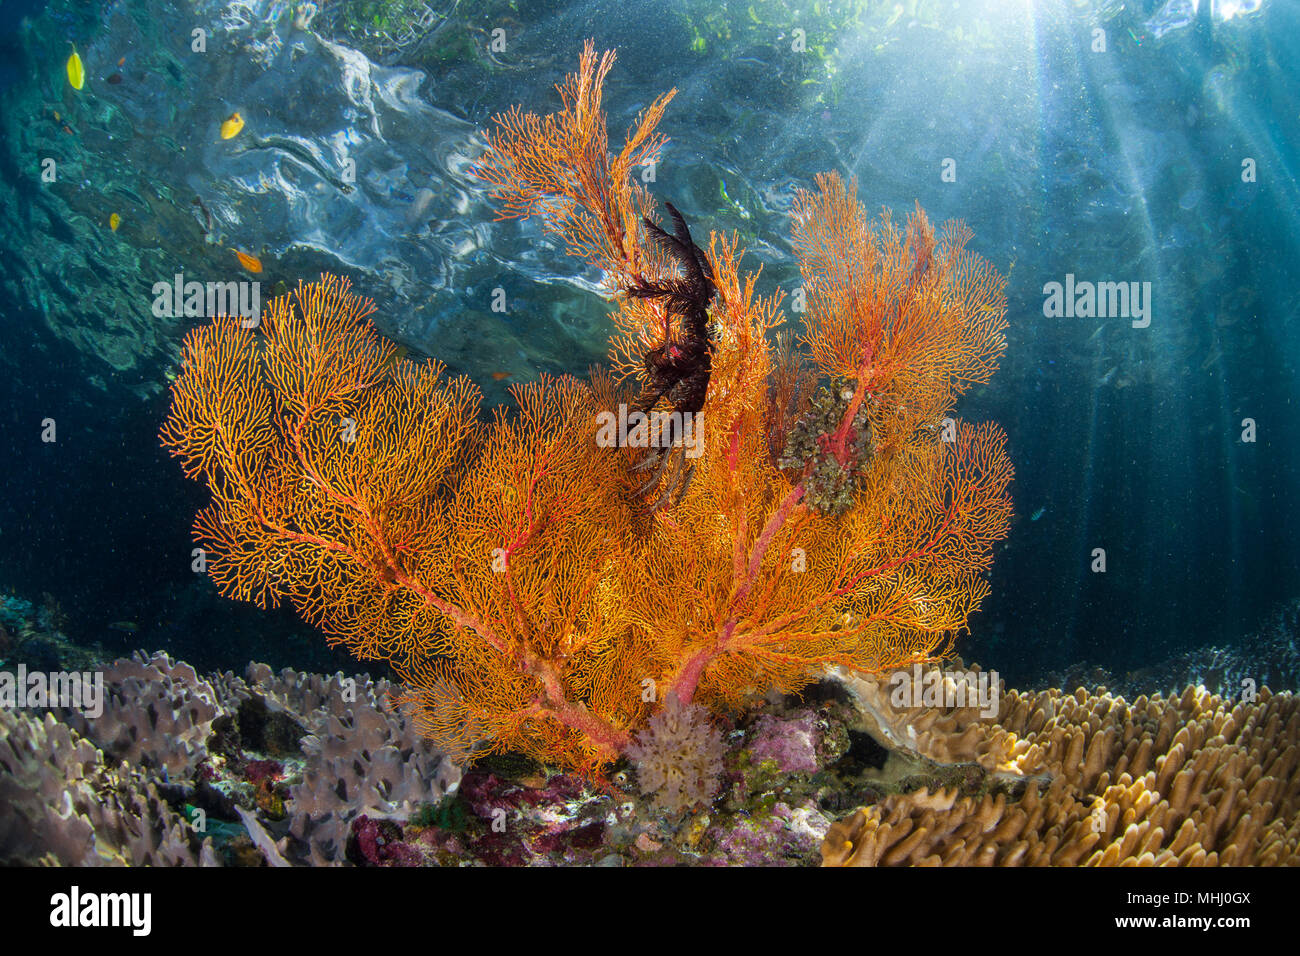 A beautiful sea fan grows in the shallows of Raja Ampat, Indonesia. This tropical region is known as the heart of the Coral Triangle. Stock Photo